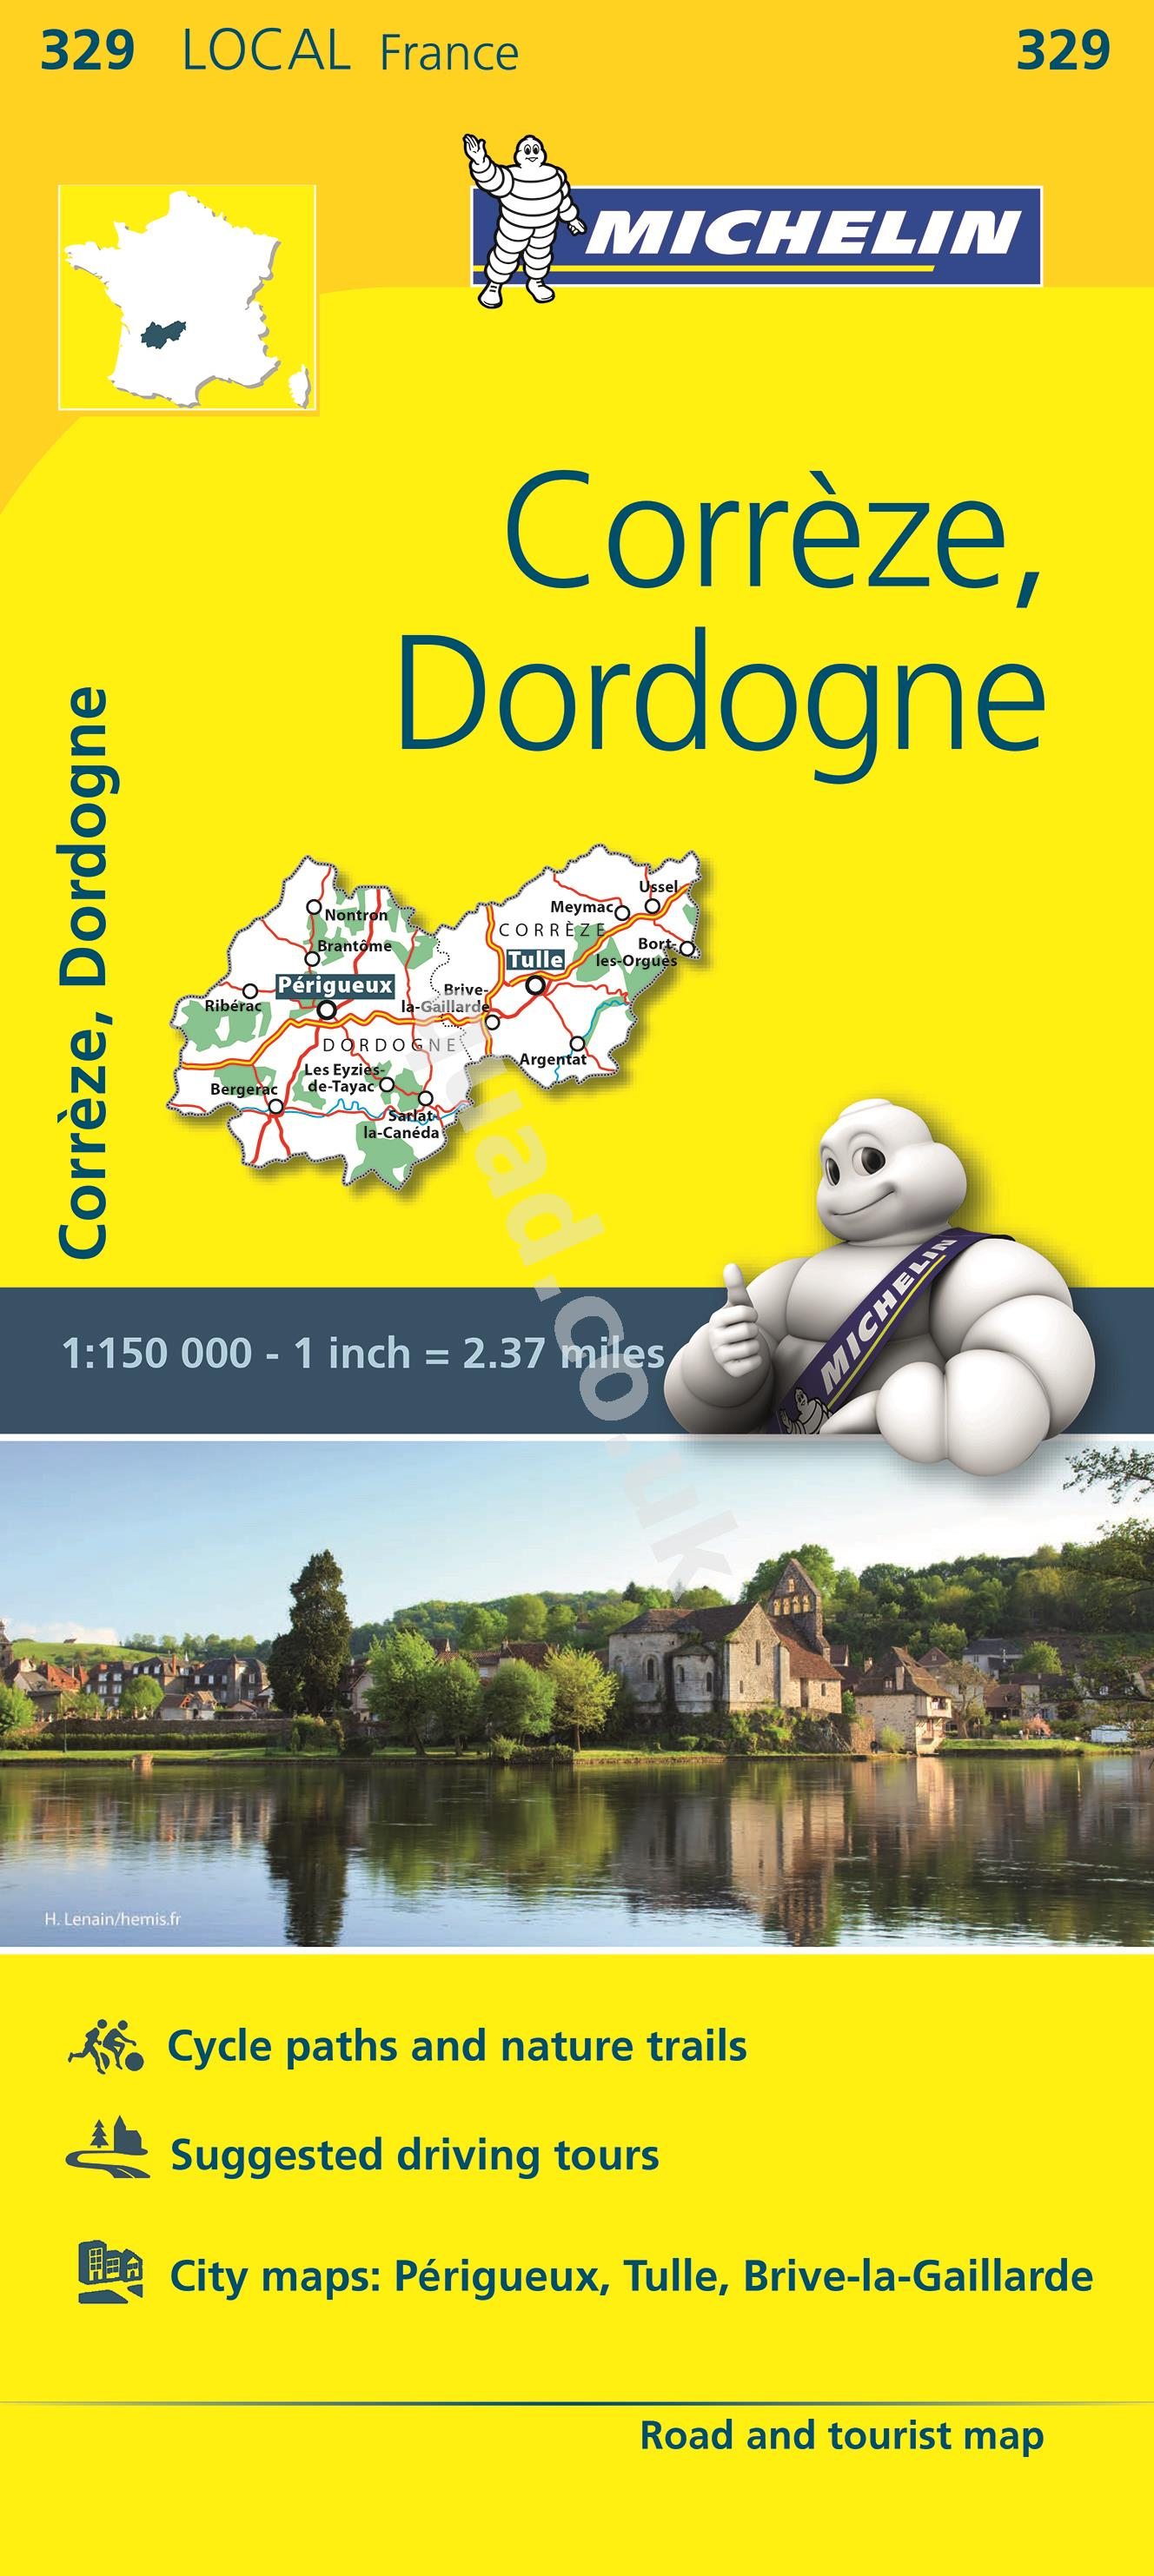 Michelin  Local Map - Correze, Dordogne (France)